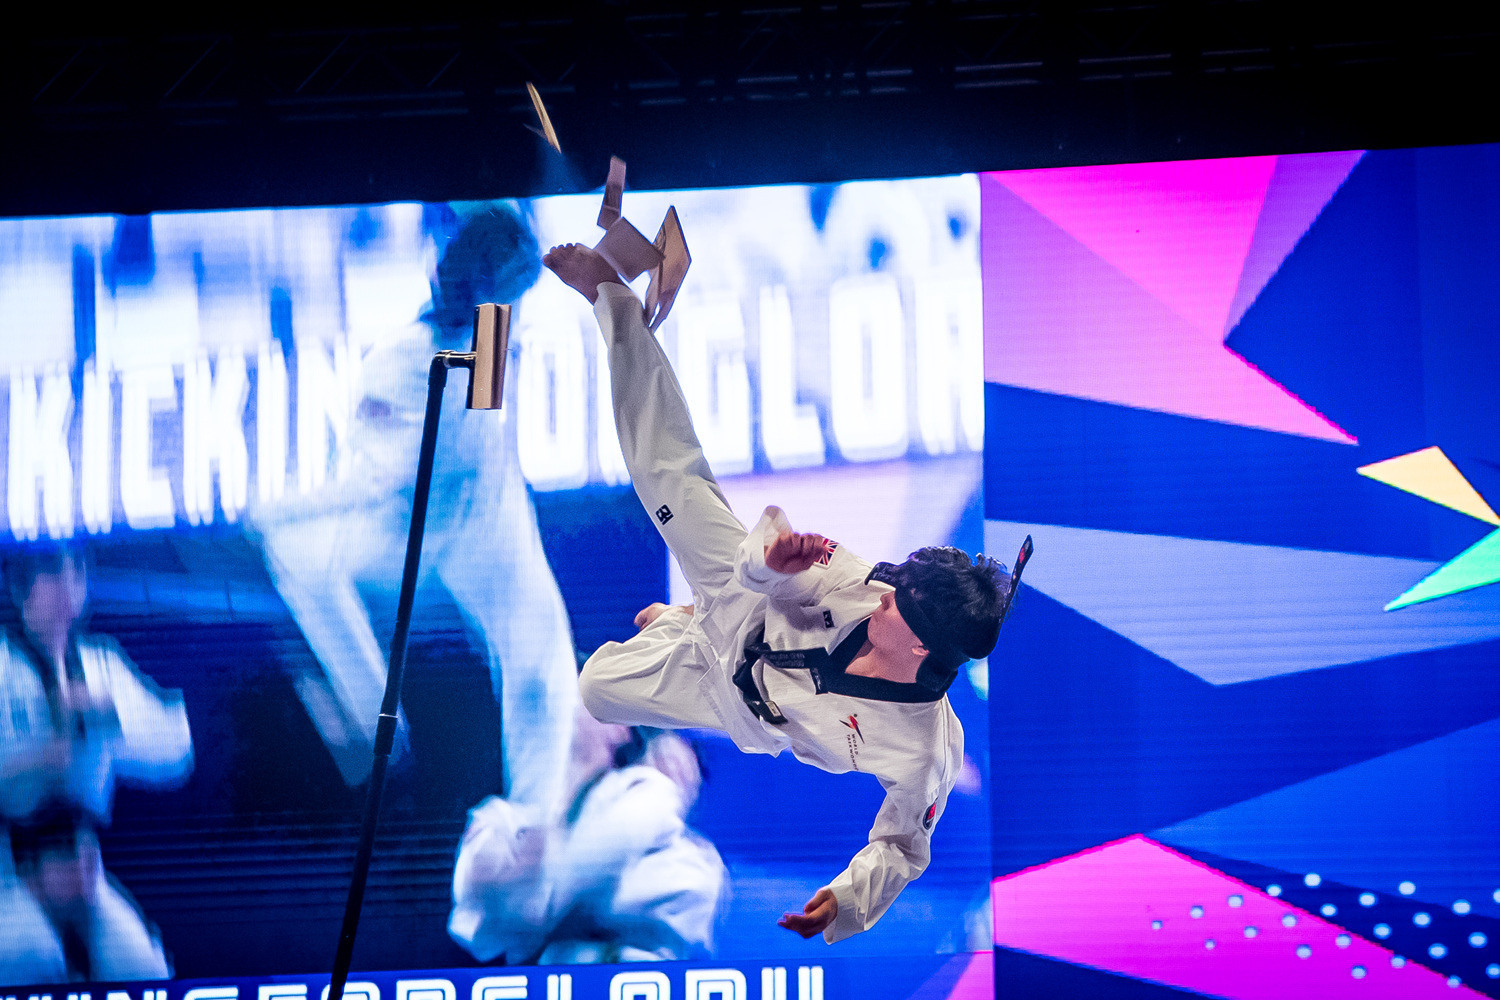 The World Taekwondo demonstration team performed at the 2019 World Taekwondo Championships Opening Ceremony ©World Taekwondo